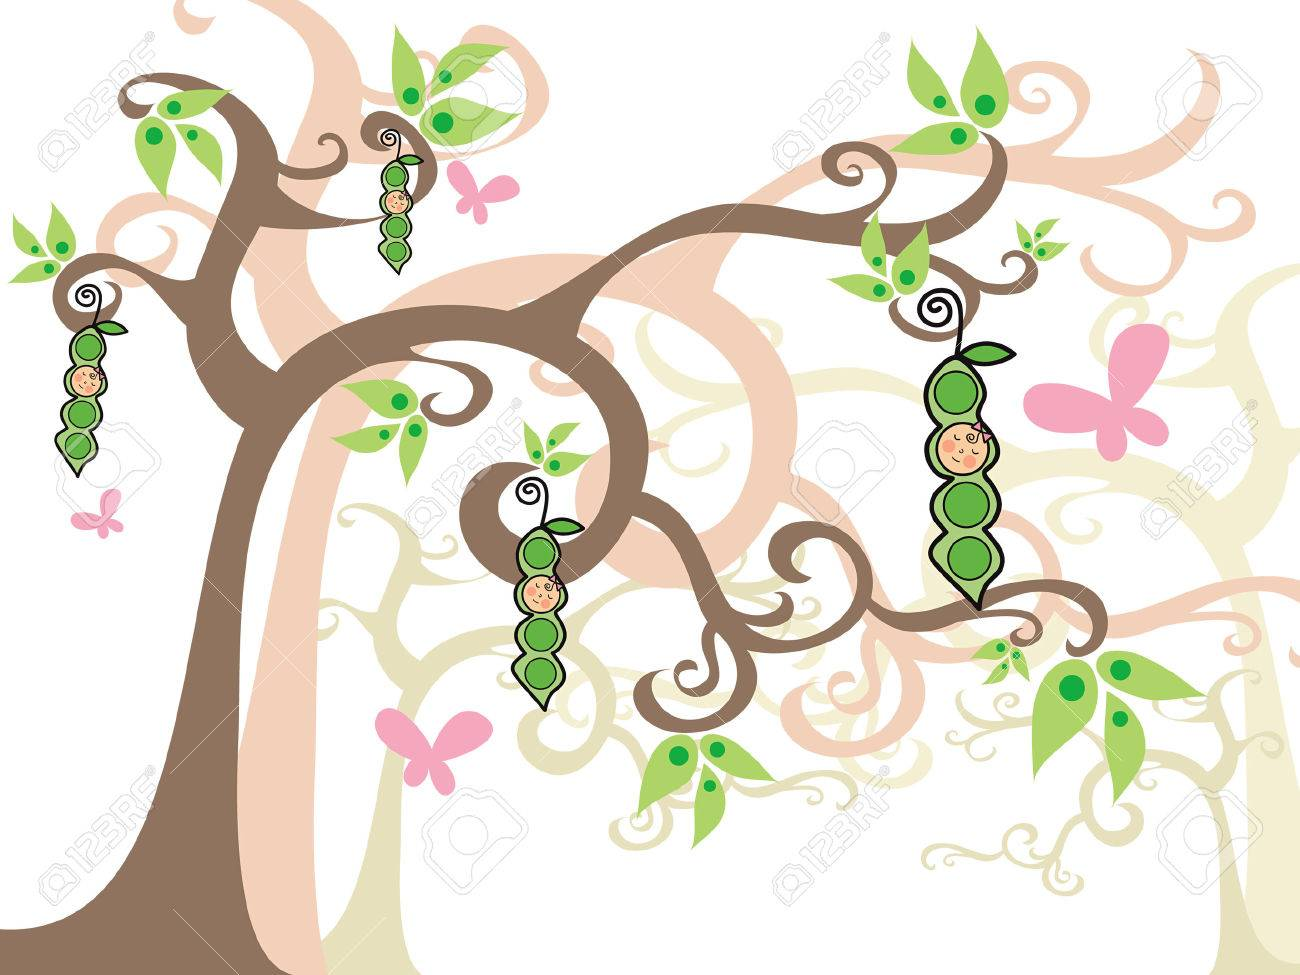 GIRLS peas in a pod (vector) - whimsical illustration Stock Vector - 1399176